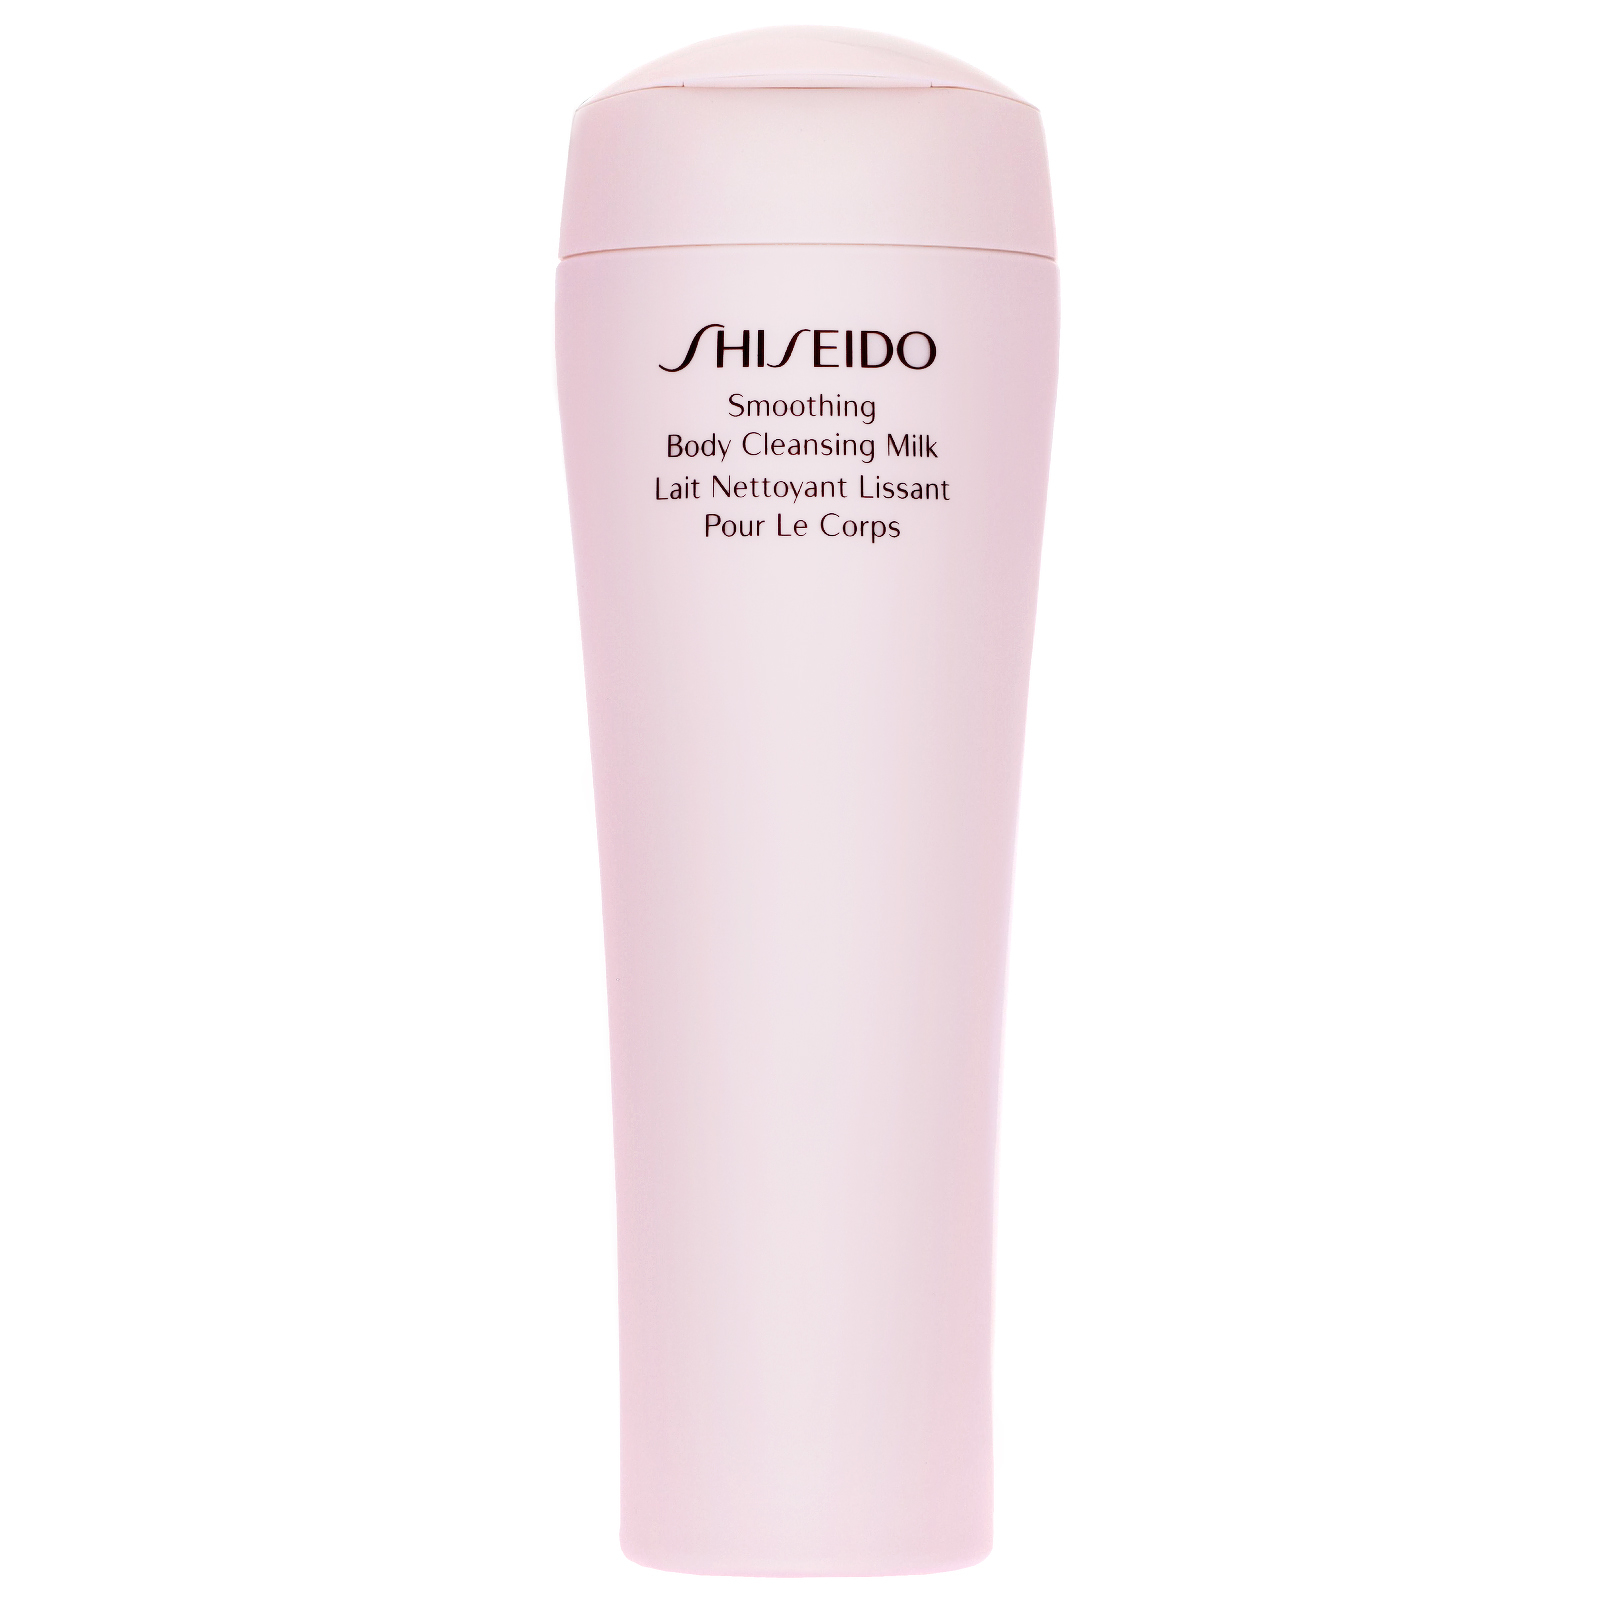 Shiseido Body Smoothing Body Cleansing Milk 200ml / 6.7 fl.oz.